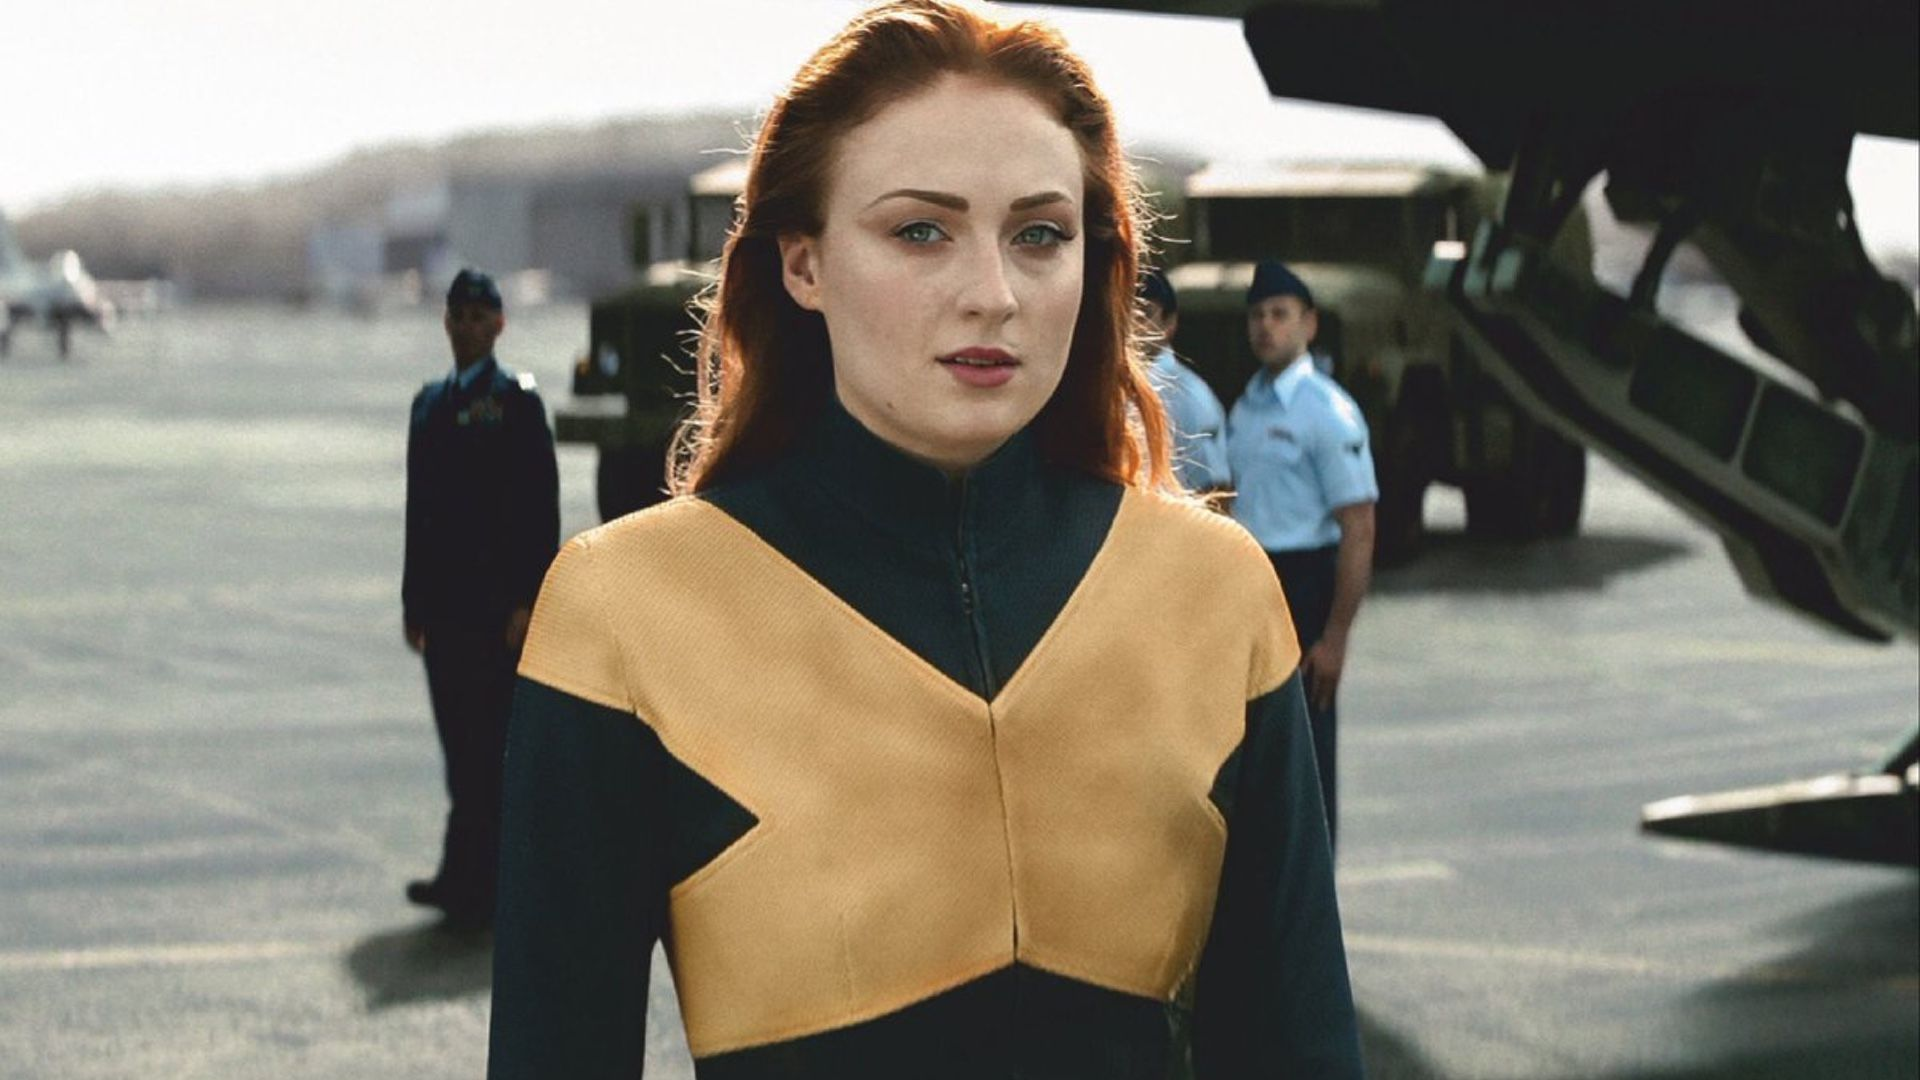 New X Men Dark Phoenix Photo Shows Jean Grey All Decked Out In Her X Men Costume Geektyrant X Men Costumes Jean Grey Costume Dark Phoenix